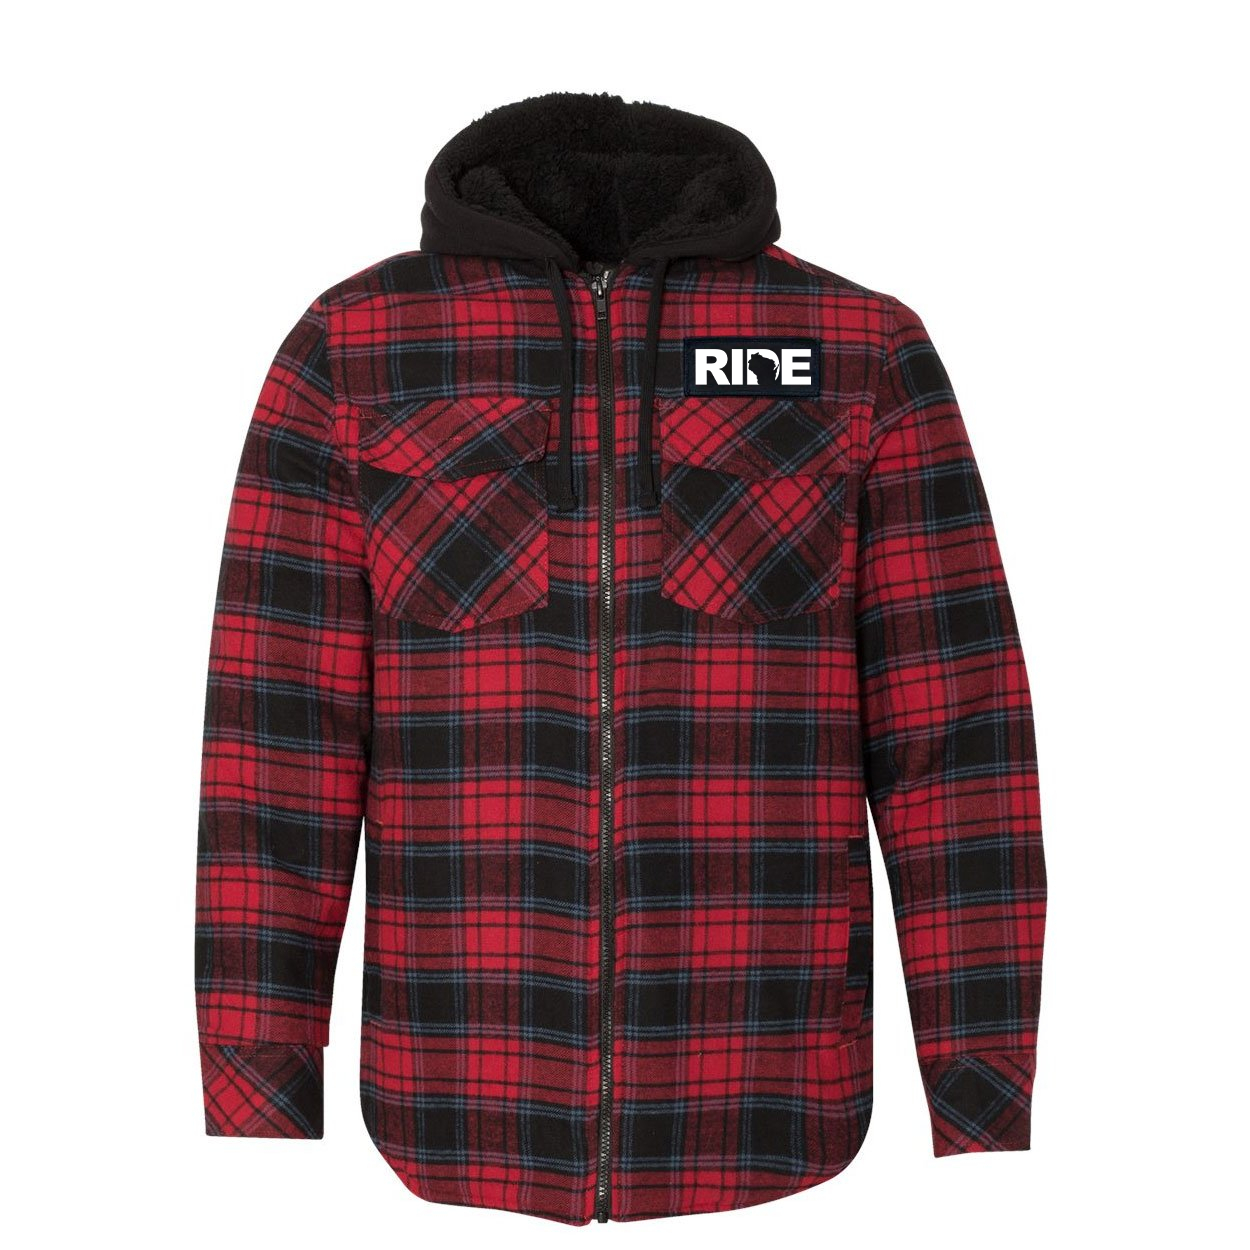 Ride Wisconsin Classic Unisex Full Zip Woven Patch Hooded Flannel Jacket Red/Black Buffalo (White Logo)